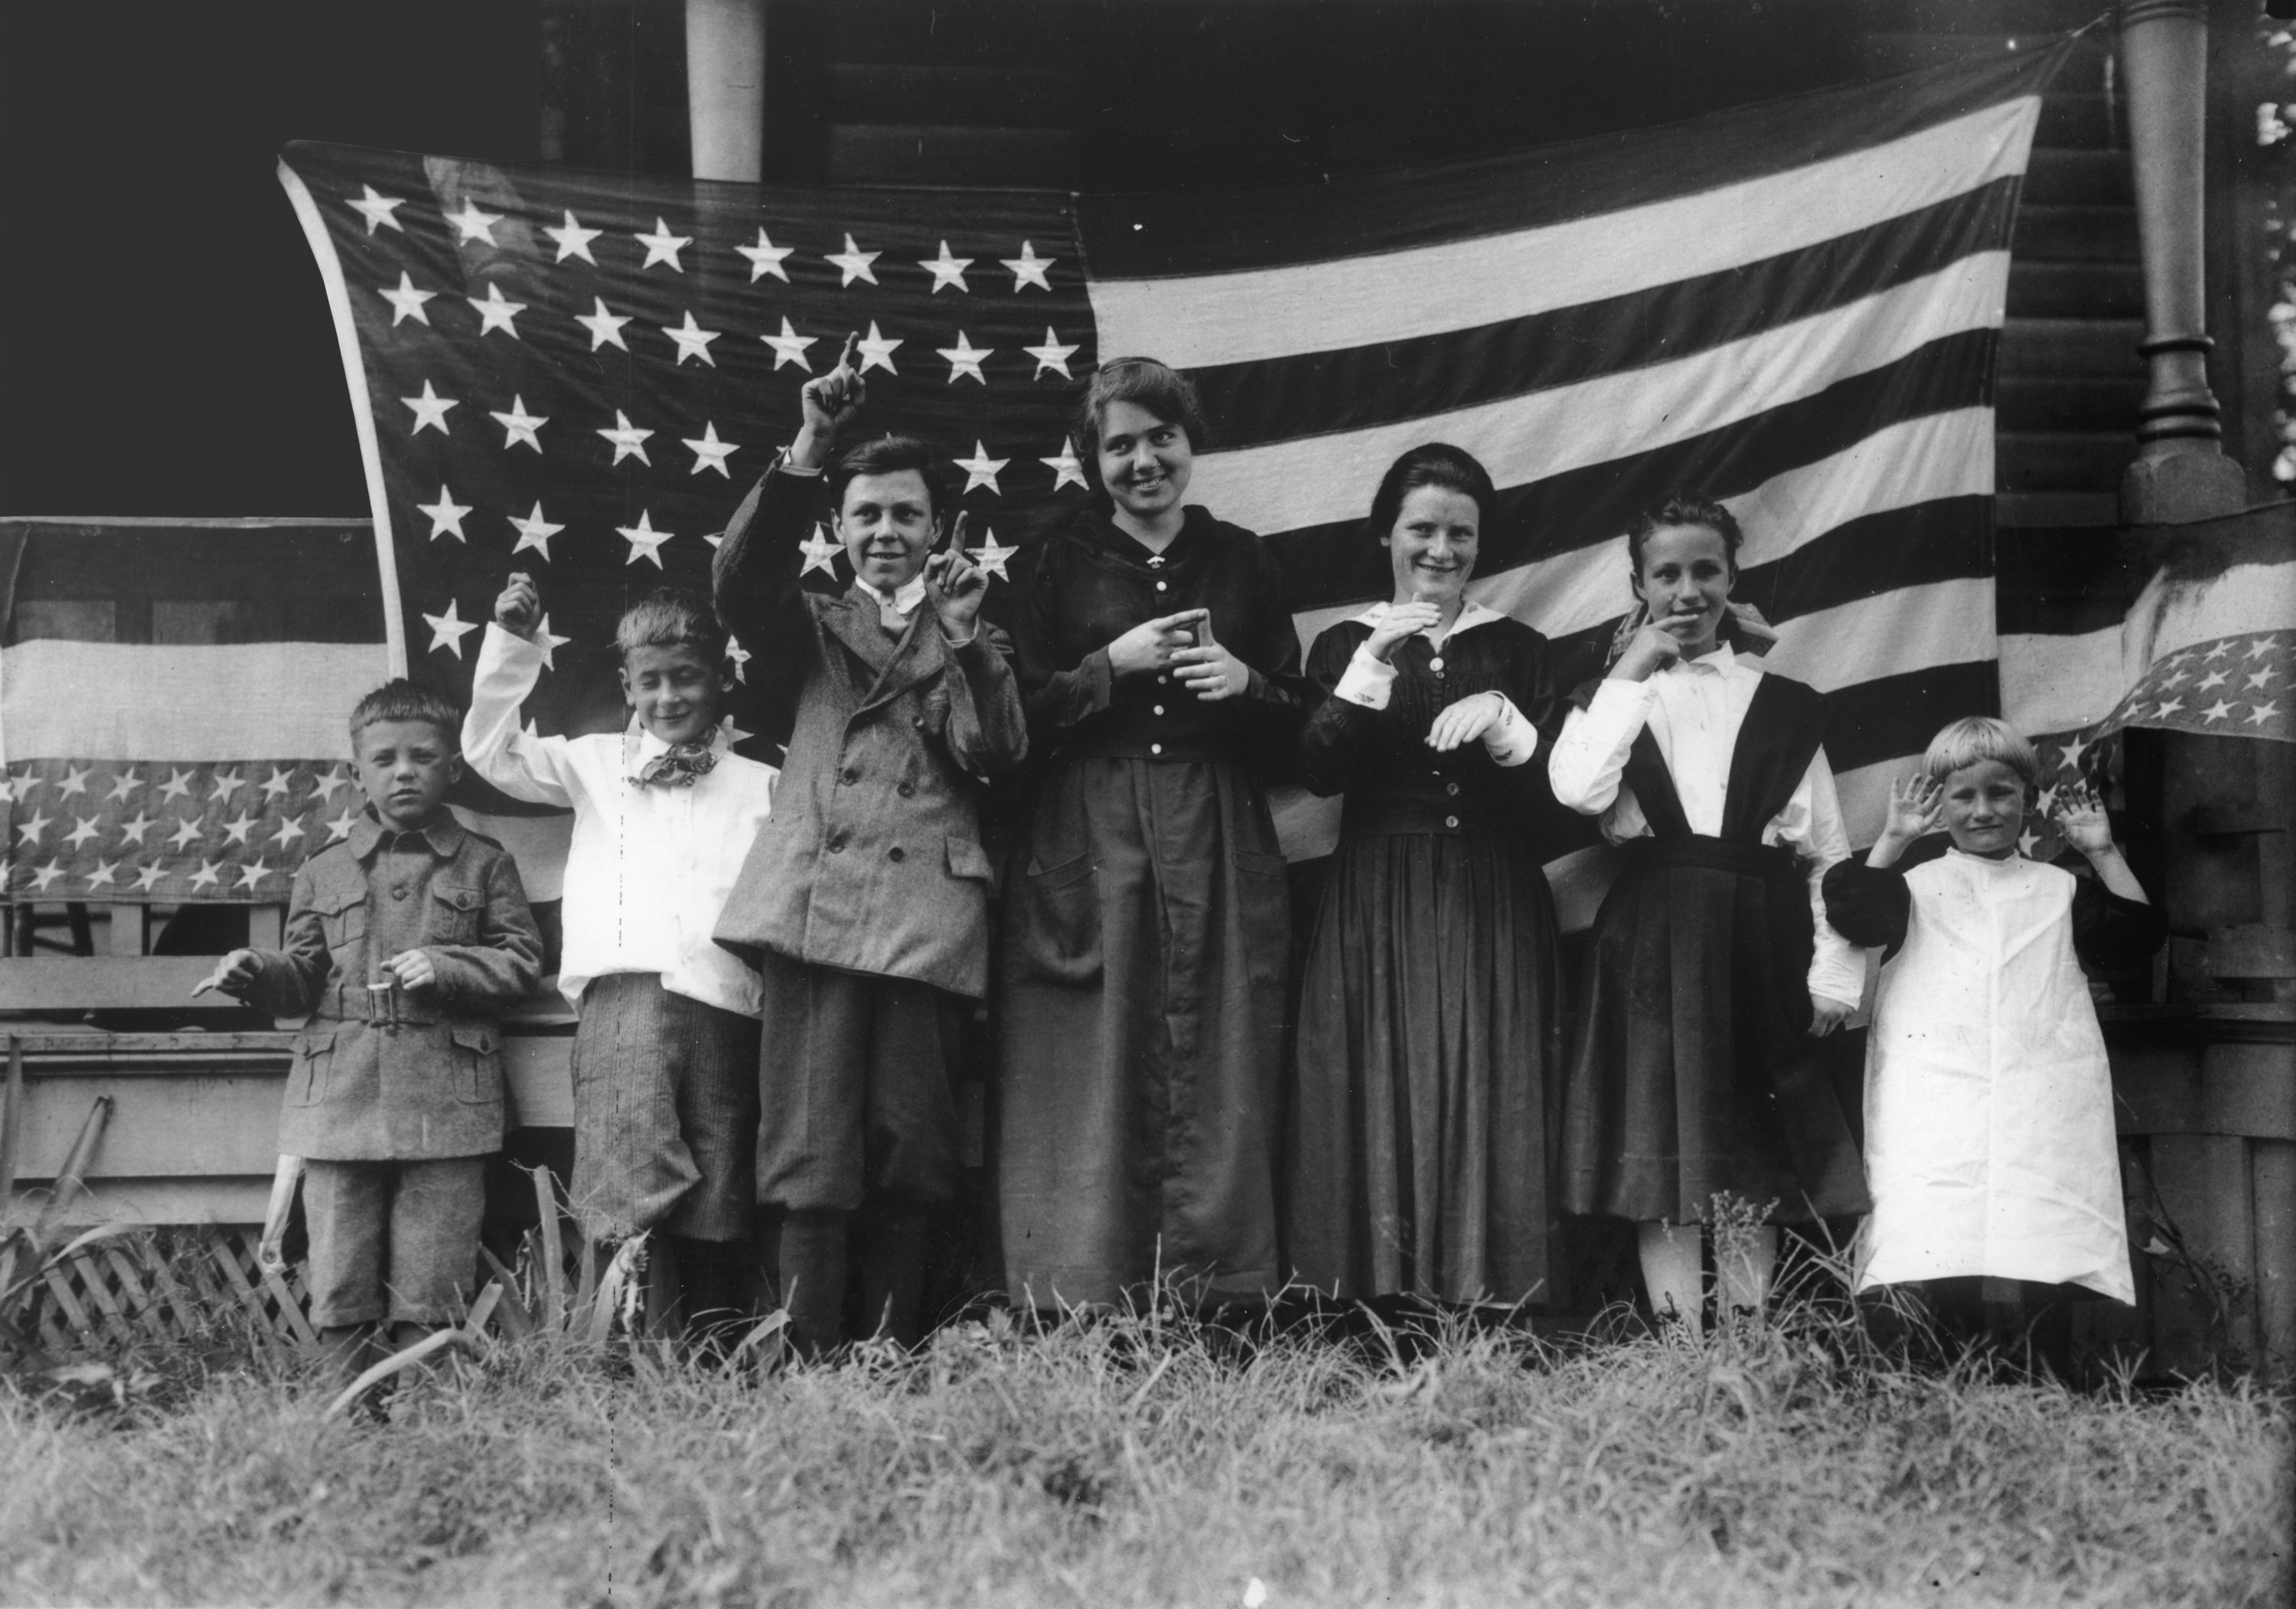 Woman in white dress with left first raised up while on the ri ght hand leaning on the U.S. Flag